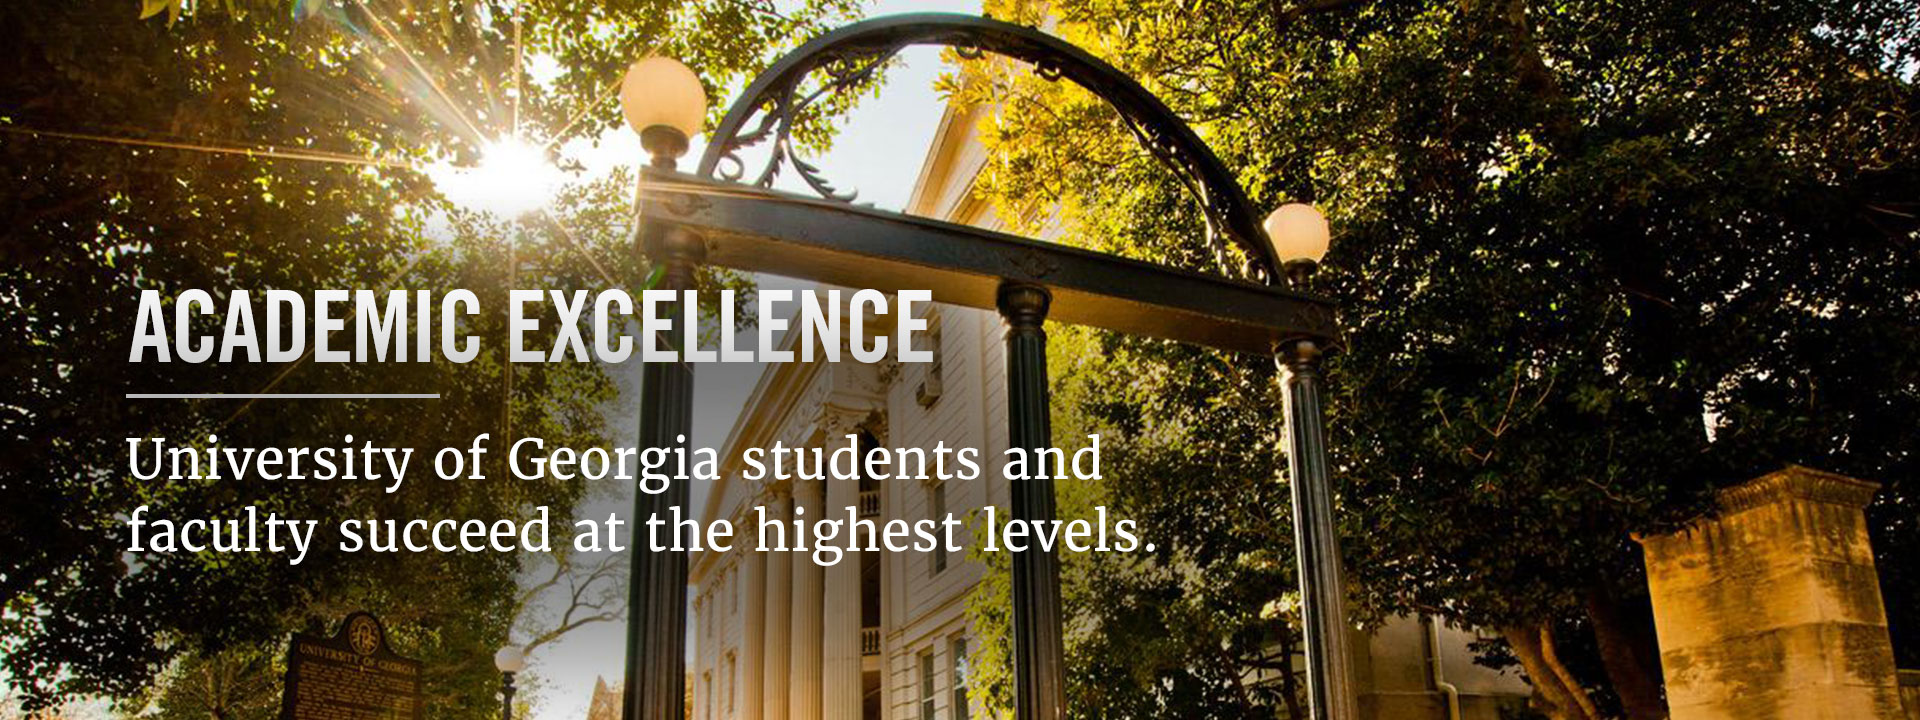 University of Georgia students and faculty succeed at the highest levels